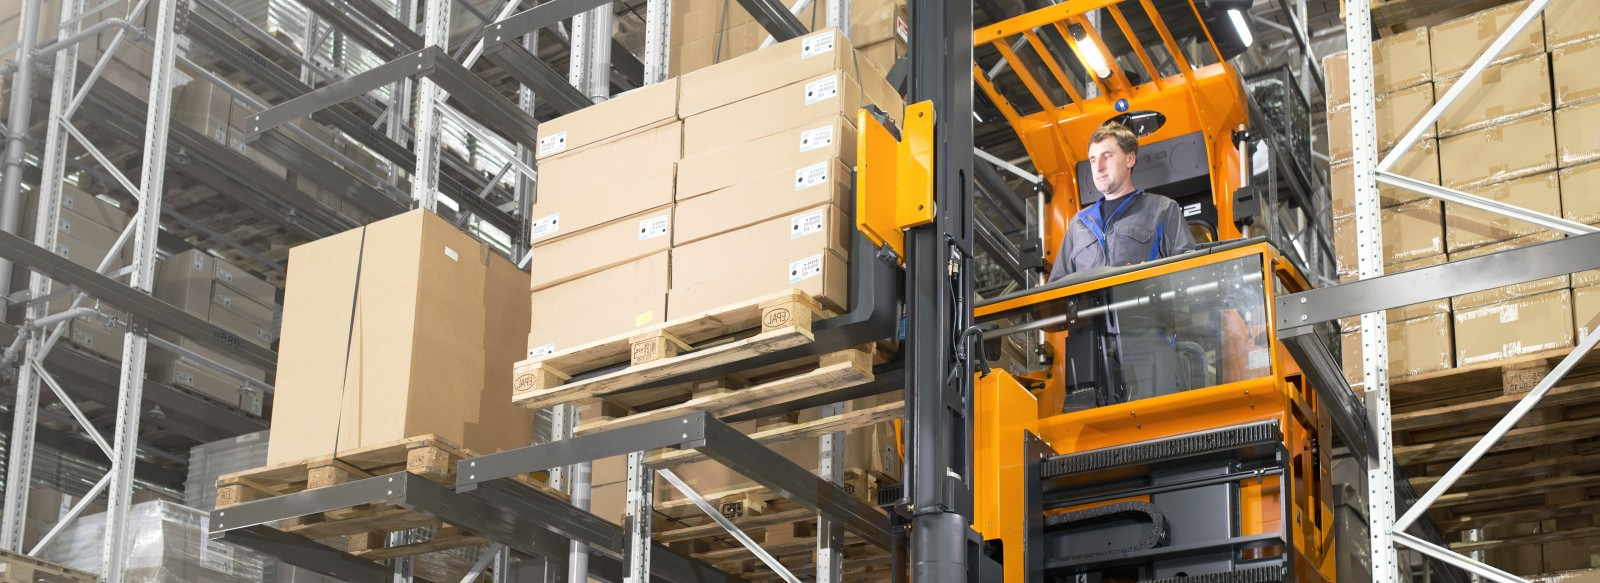 Order picking stacker trucks - High up in very narrow aisles